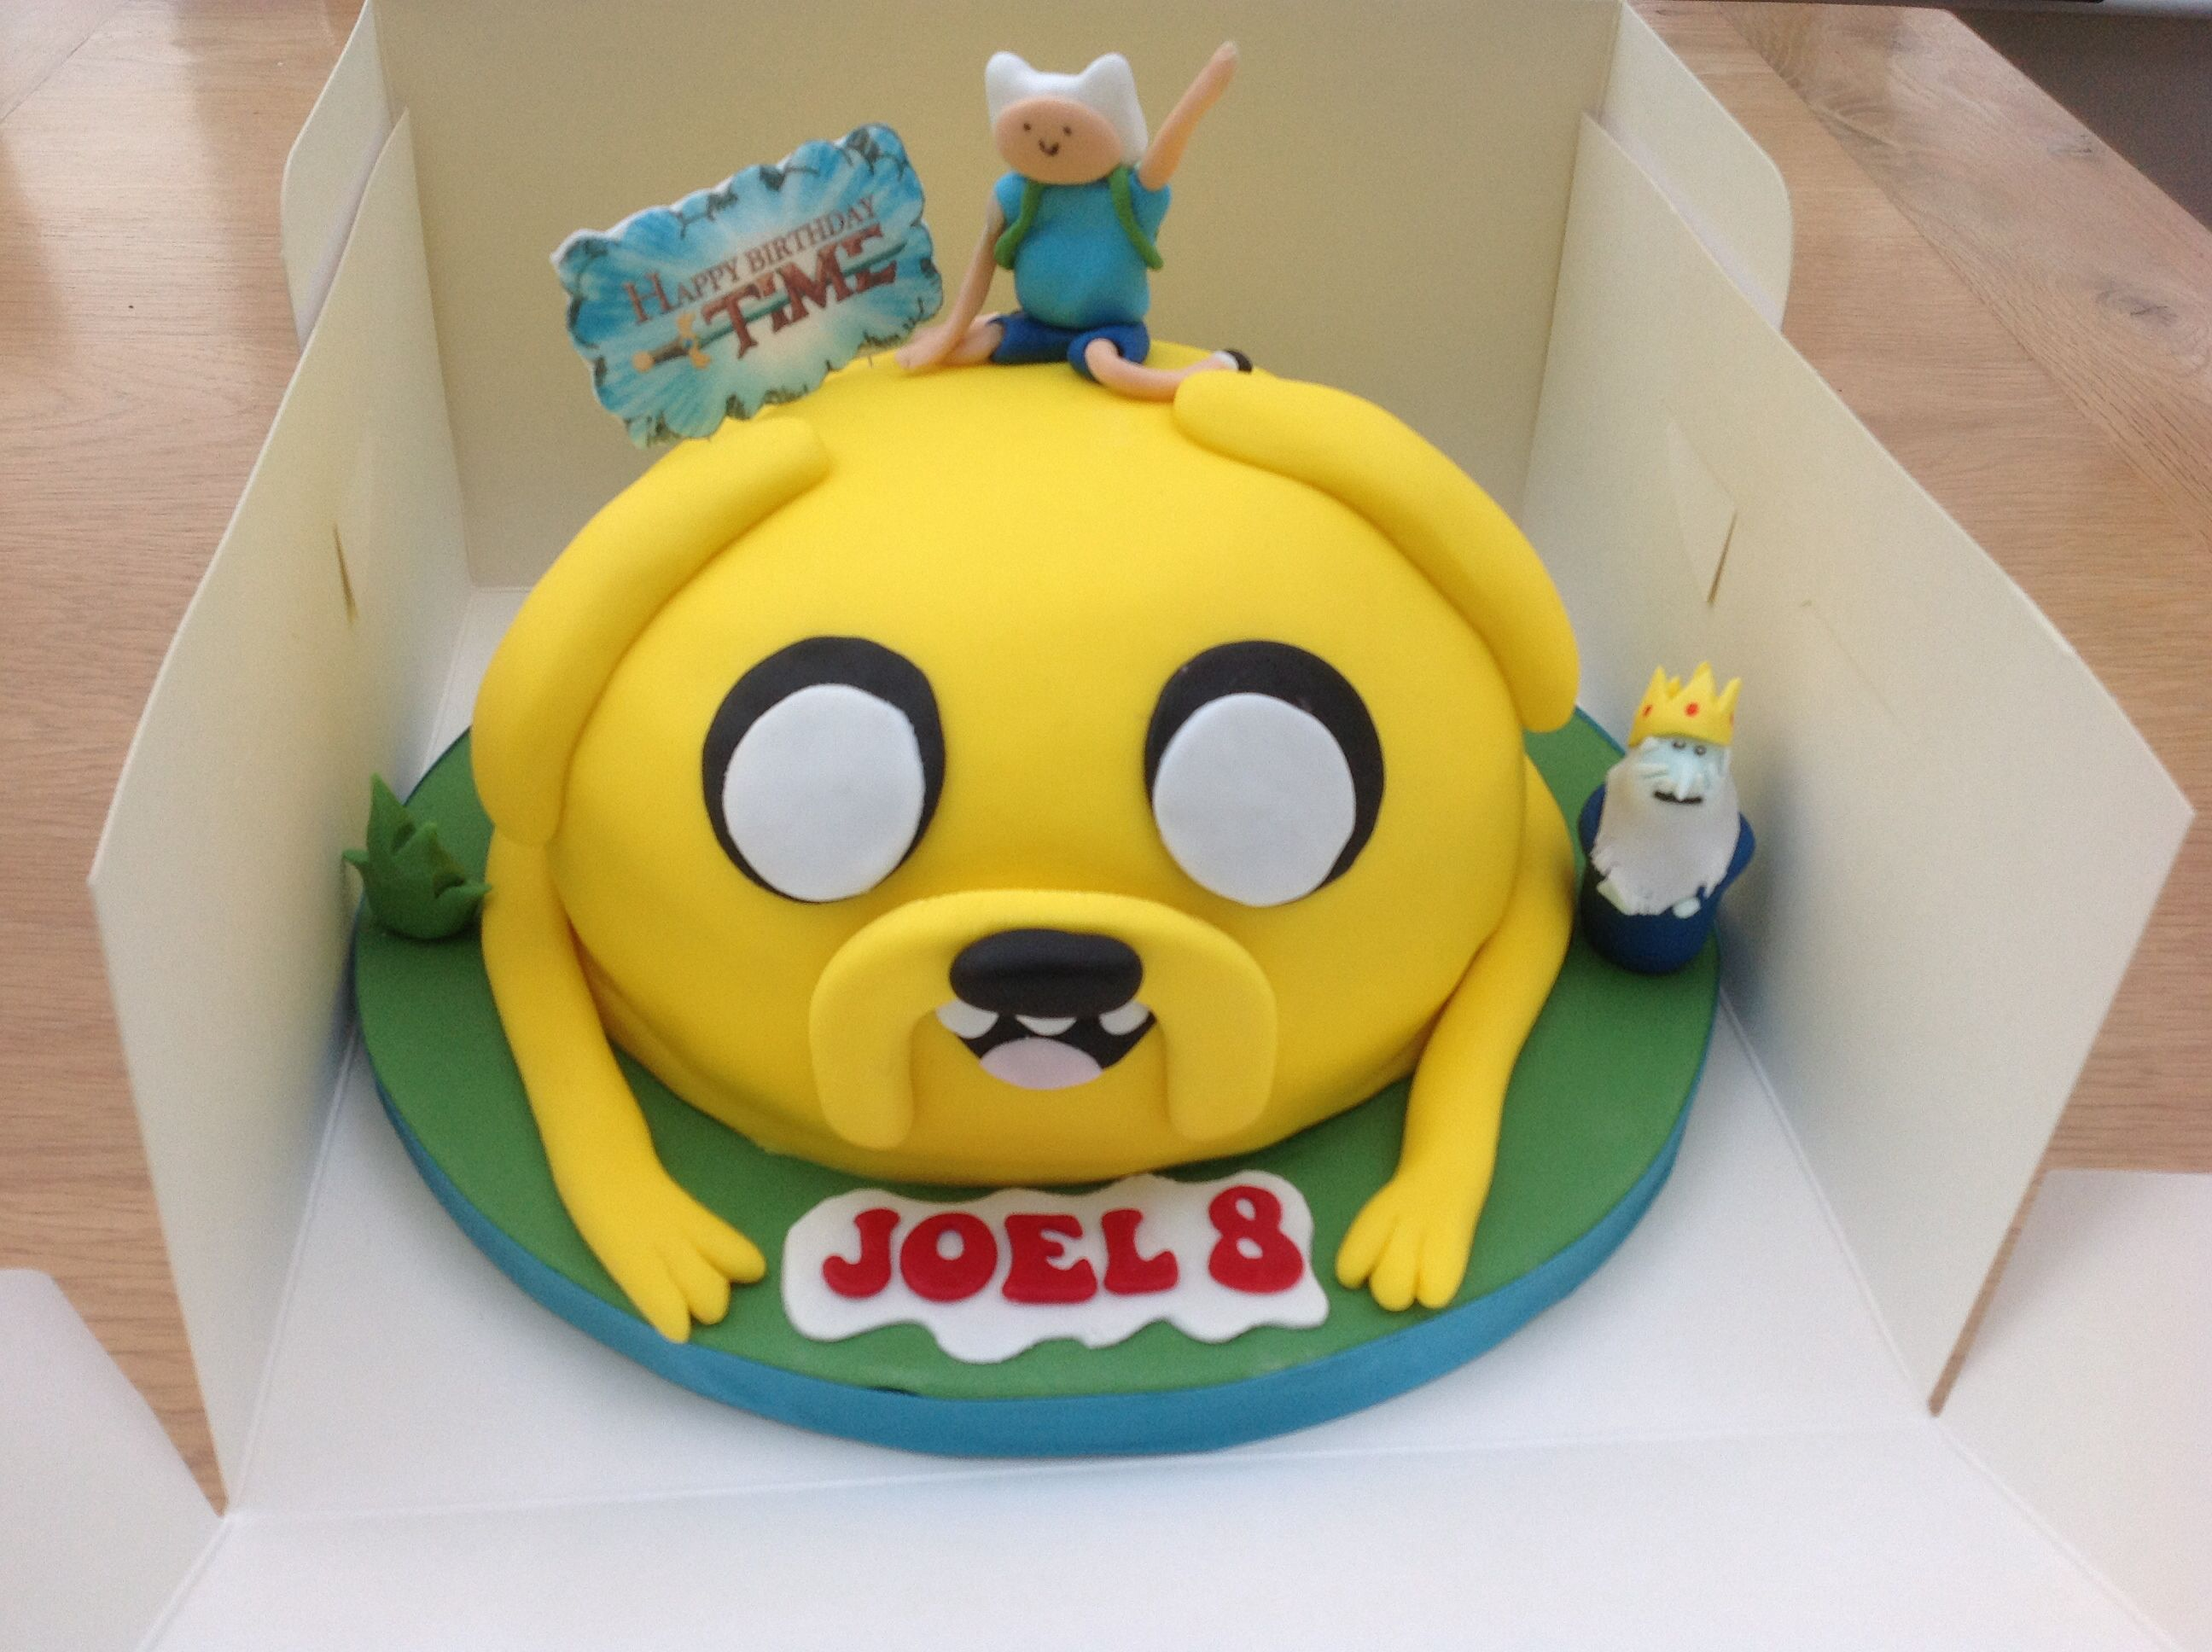 Stupendous Adventure Time With Finn And Jake Birthday Cake Design Based On Funny Birthday Cards Online Alyptdamsfinfo